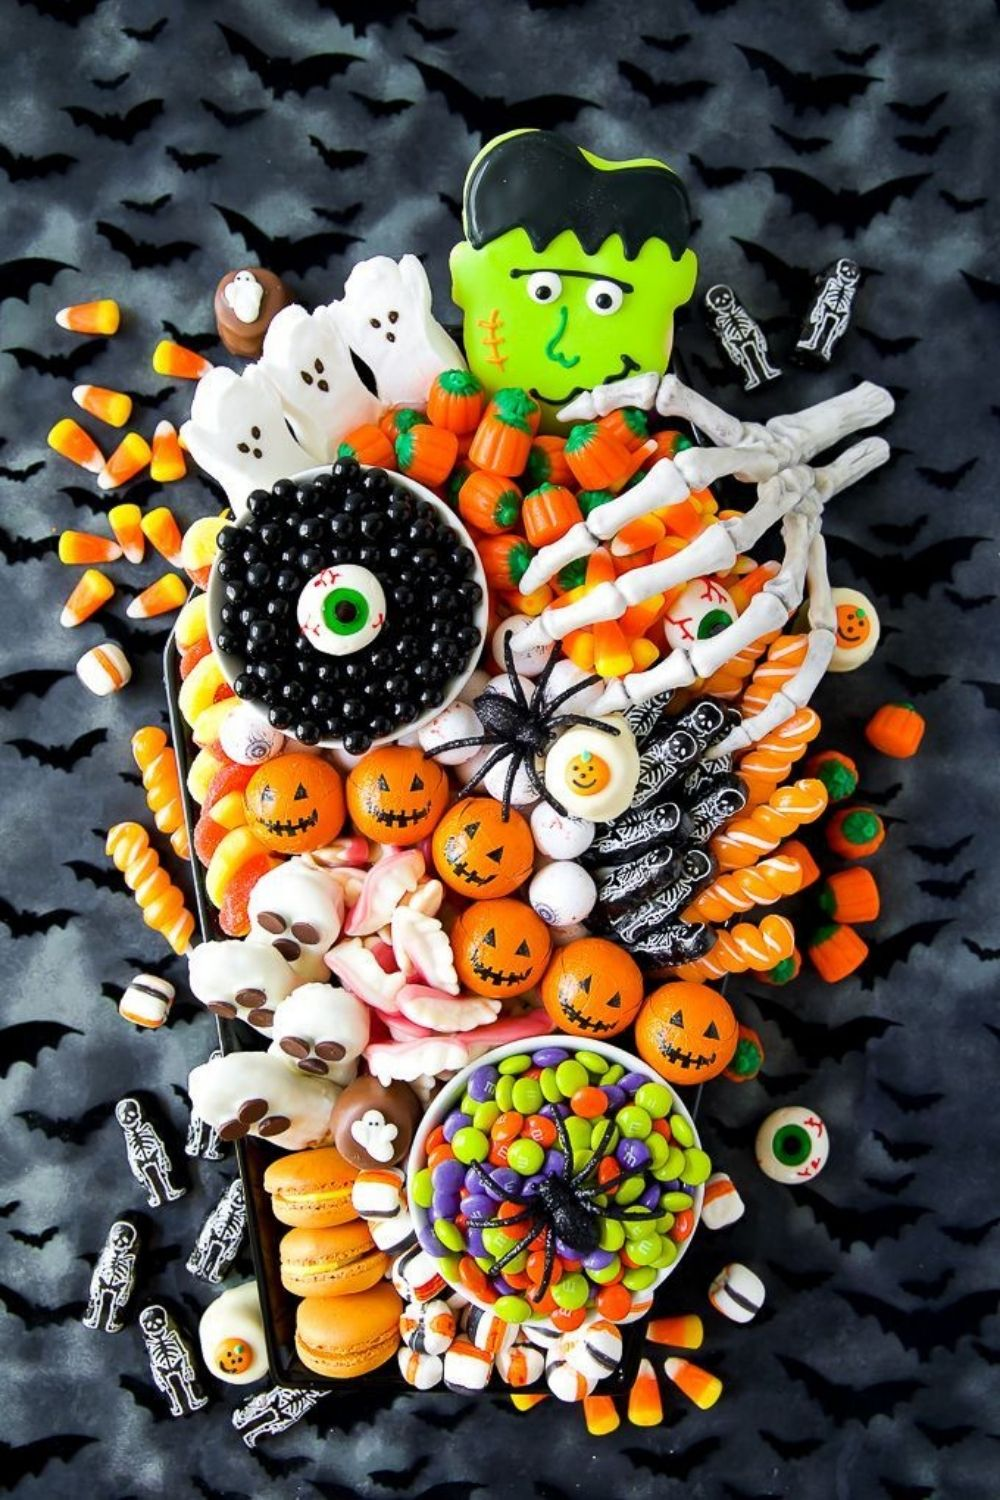 33 Fun Halloween Party Ideas 2021 Even a Newbie Host Can Handle